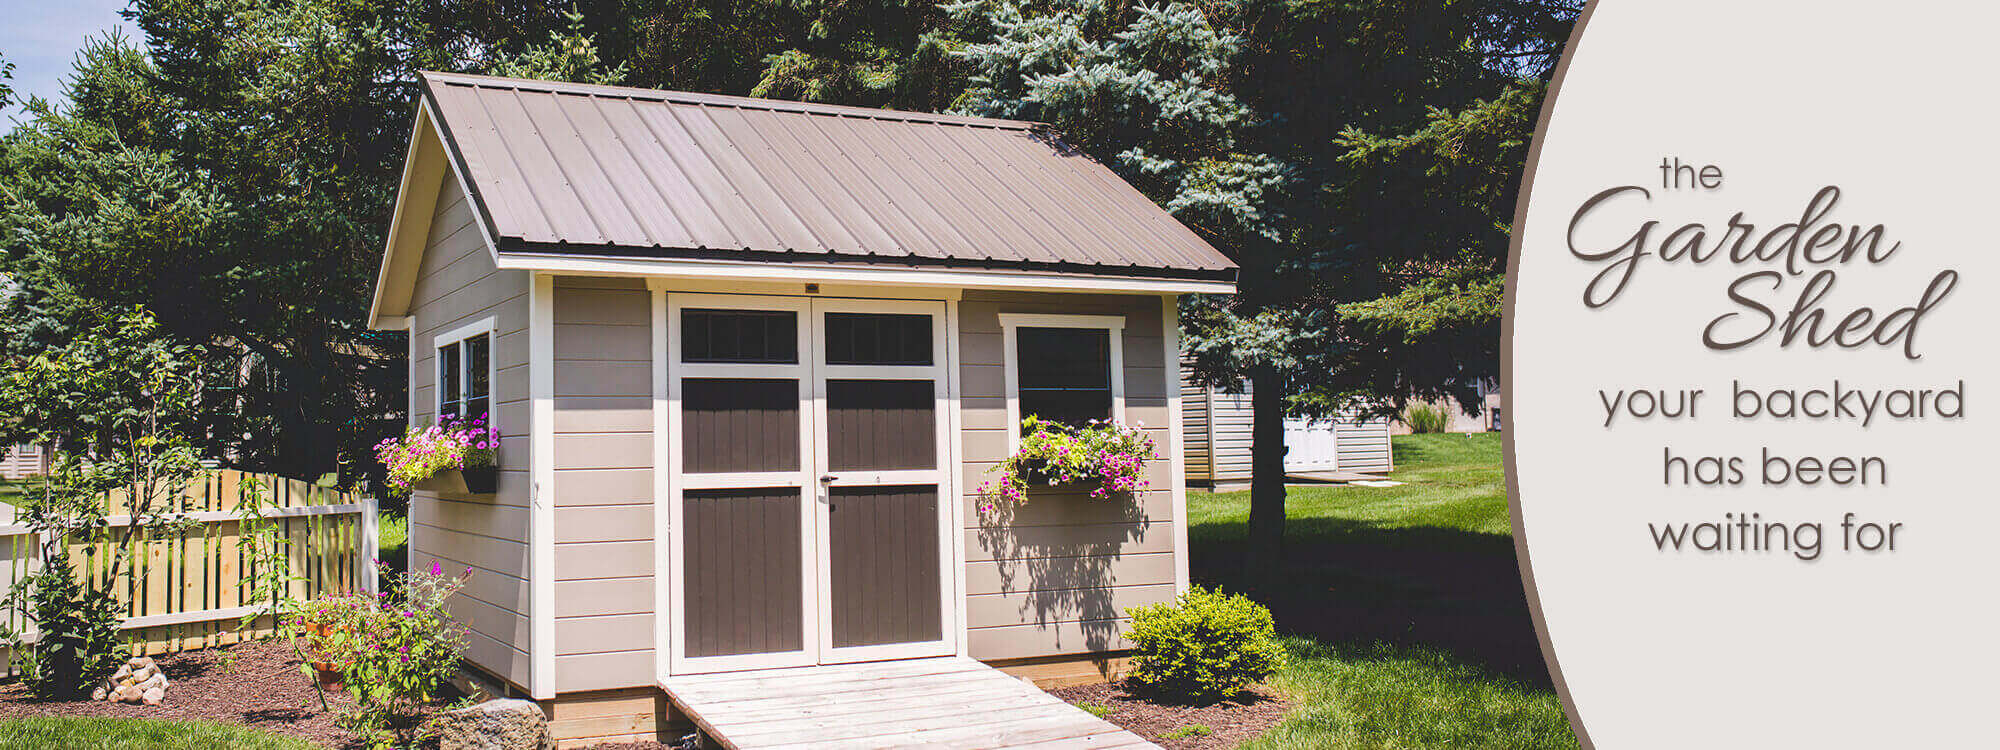 Hostetler S Lawn Furniture And Storage Sheds Hostetler S Furniture